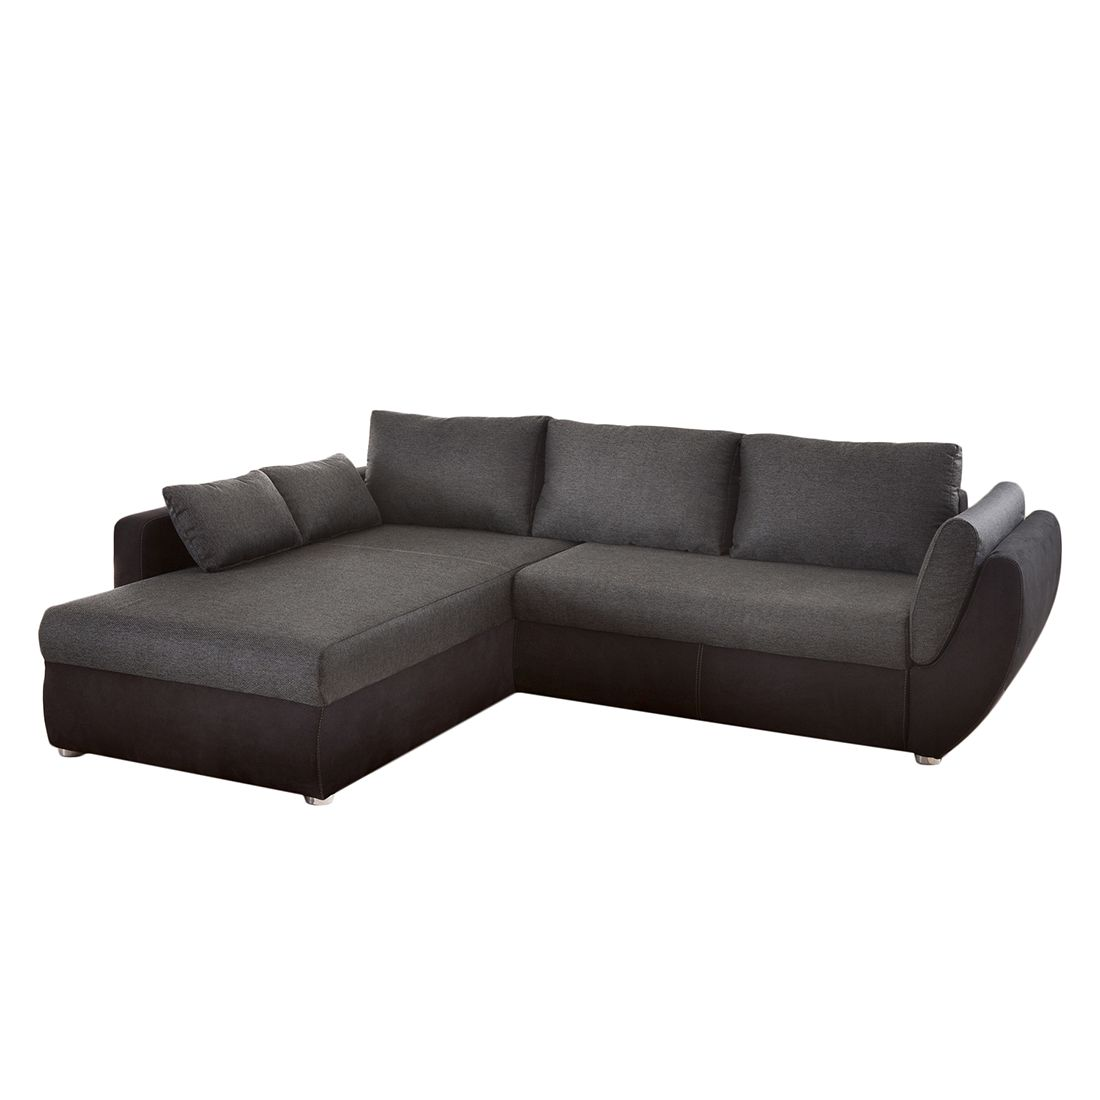 microfaser sofa cool reinigung microfaser couch with microfaser sofa elegant sofa with. Black Bedroom Furniture Sets. Home Design Ideas